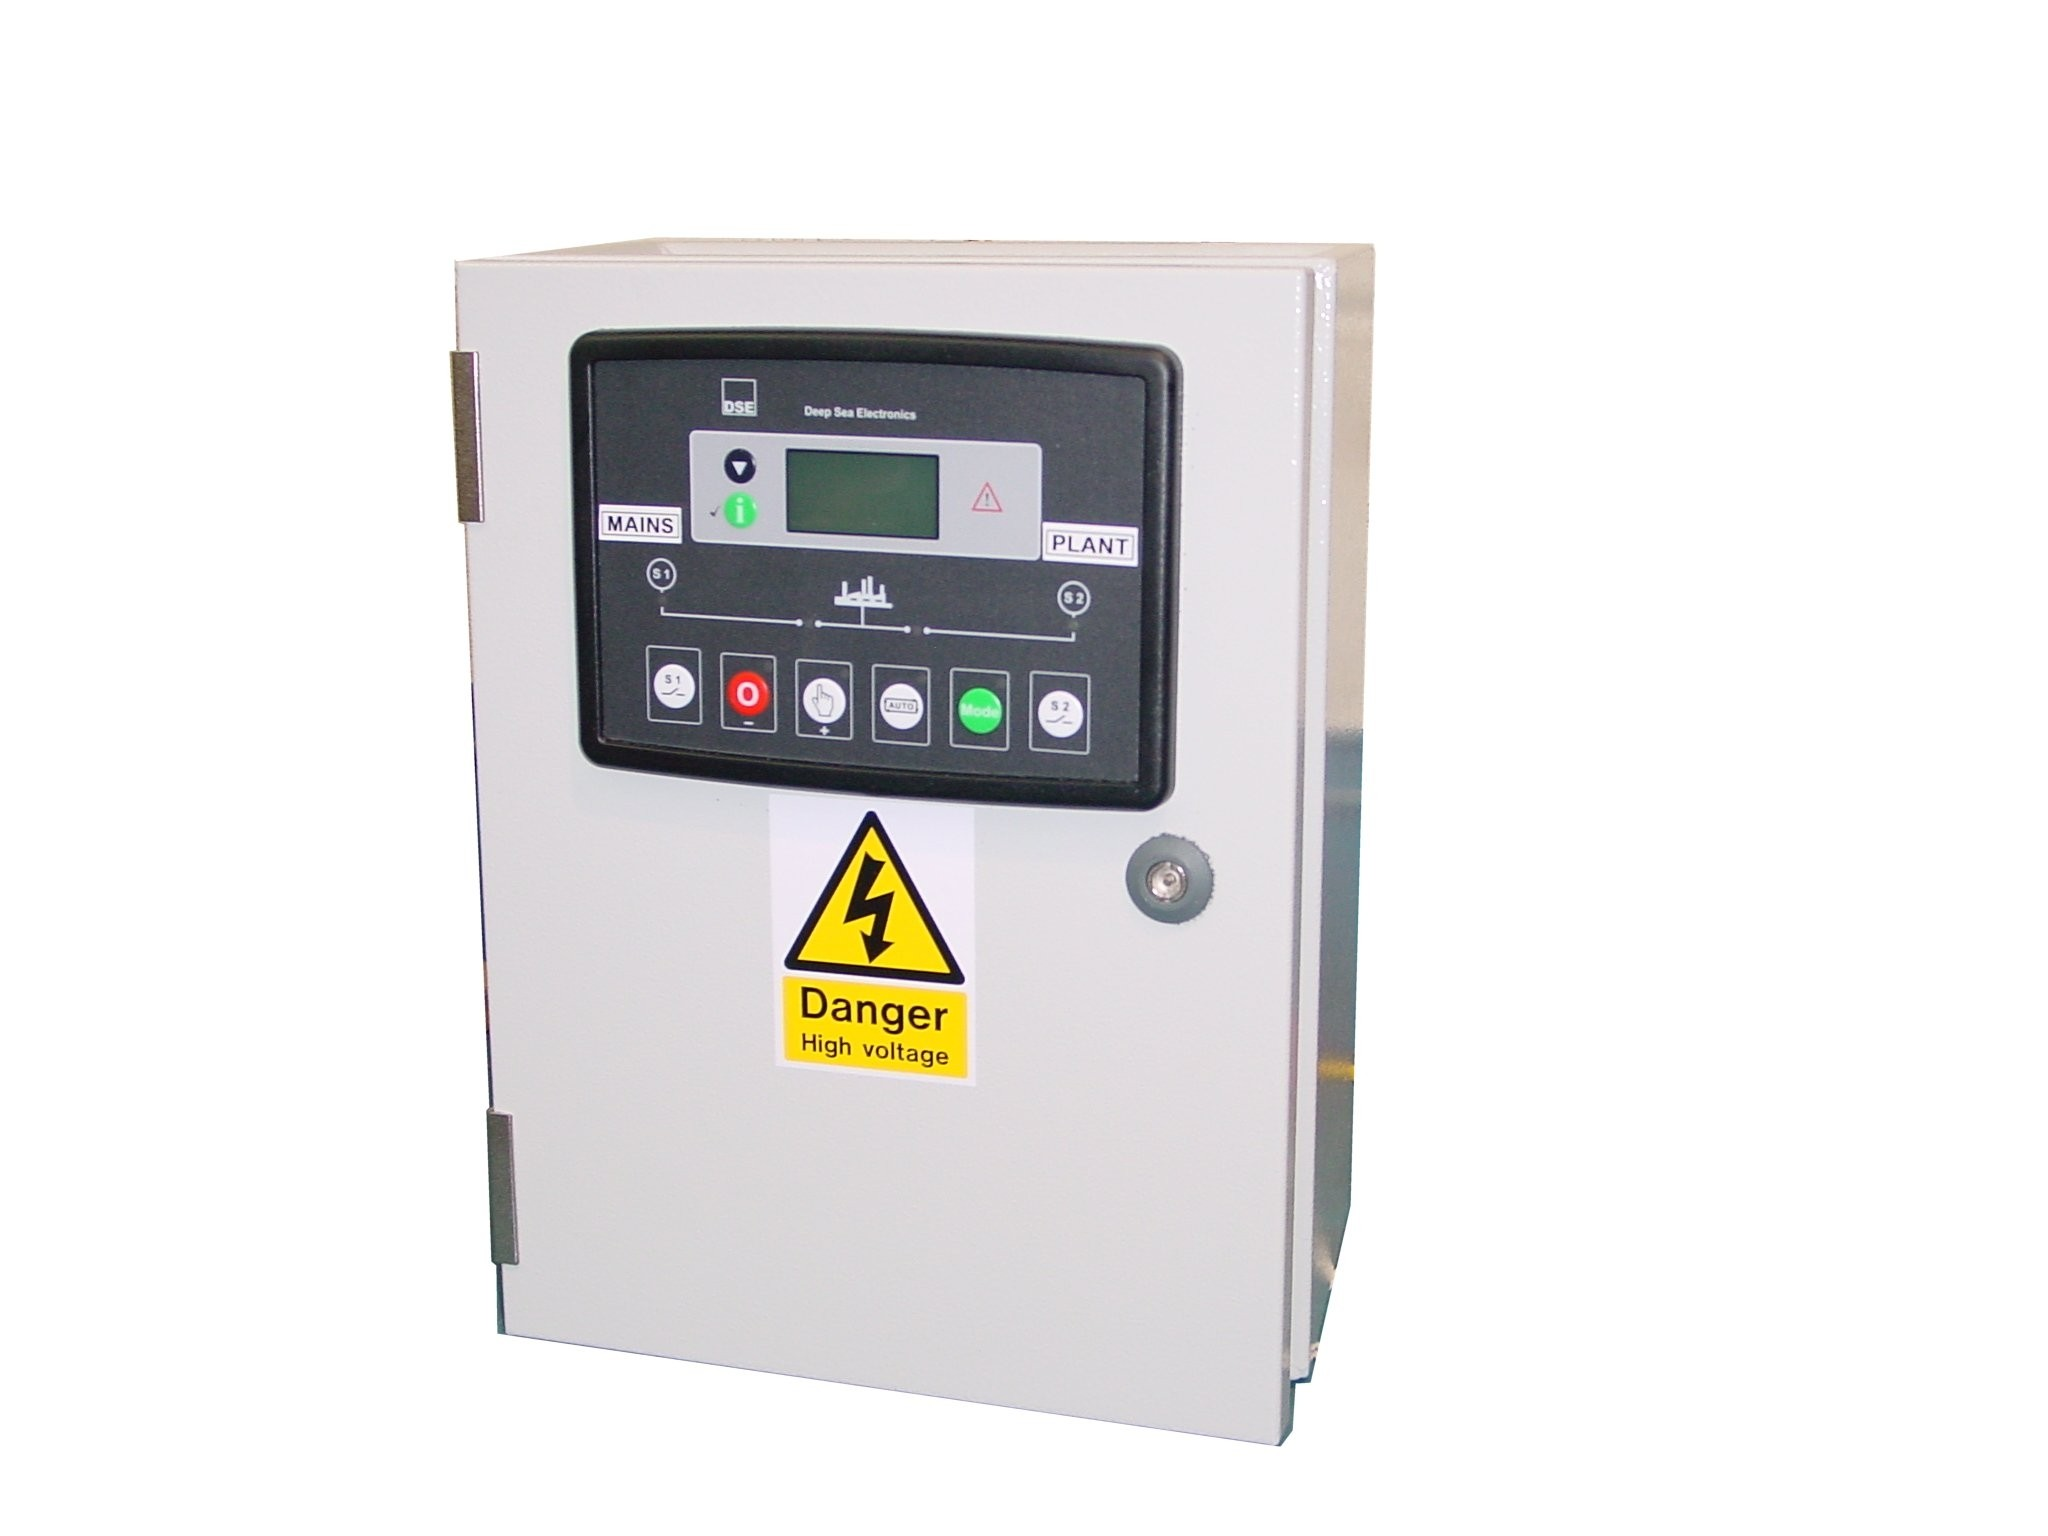 3 Phase Generator Automatic Transfer Switch For Commercial And Wiring Panel Ats Amf 30a 400v Dse334 Abb Contactors